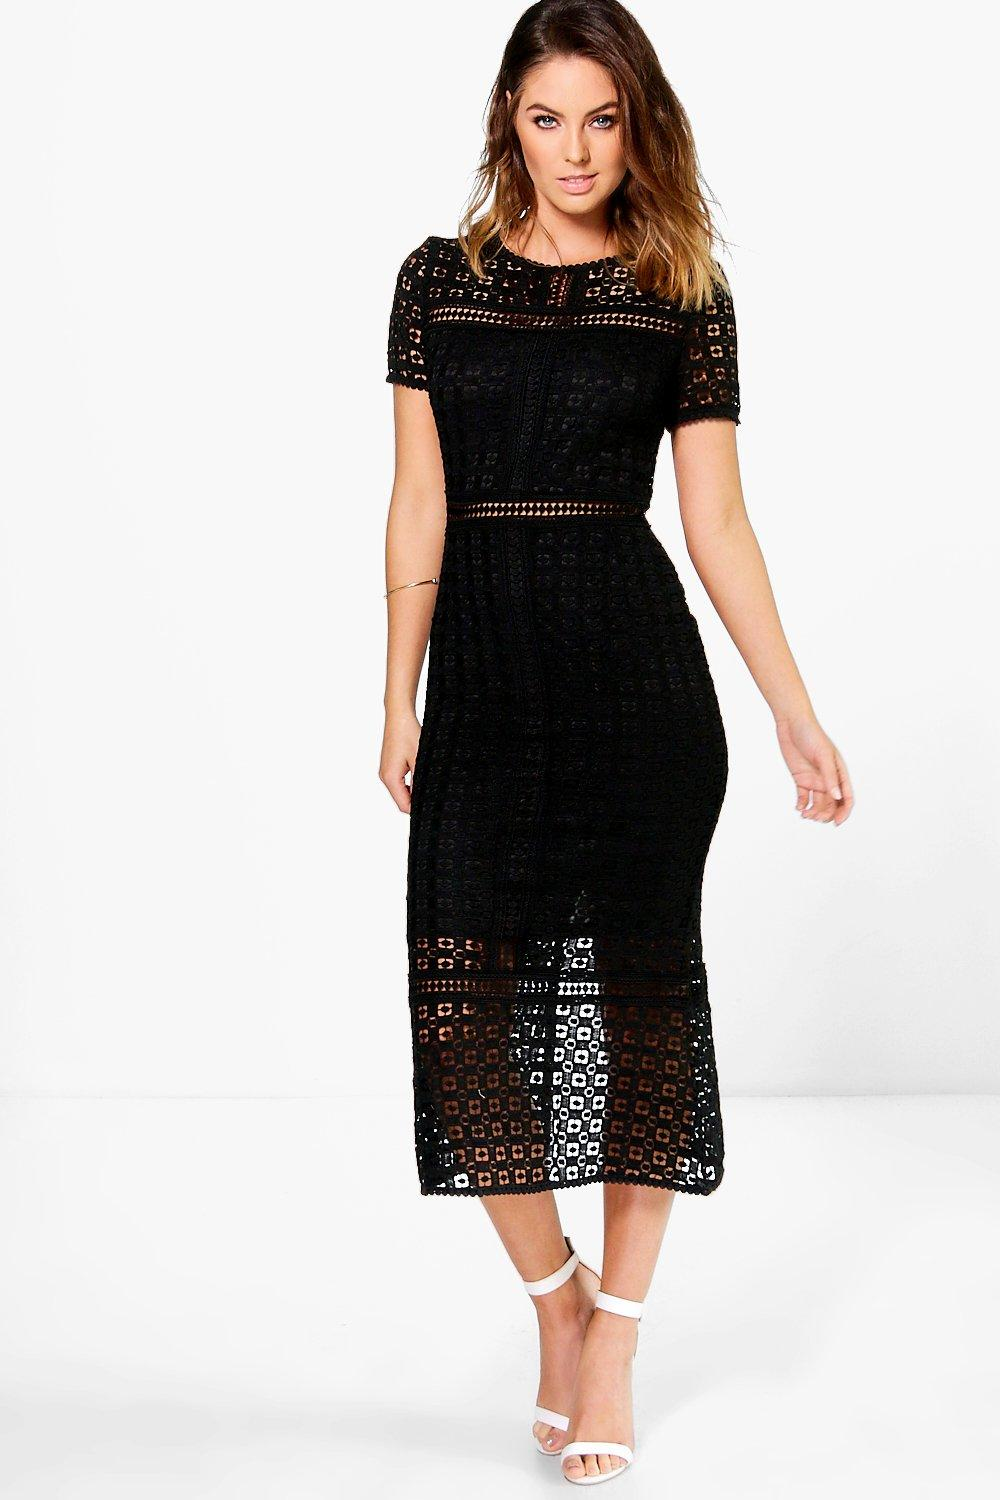 Boutique Odette Crochet Midi Dress